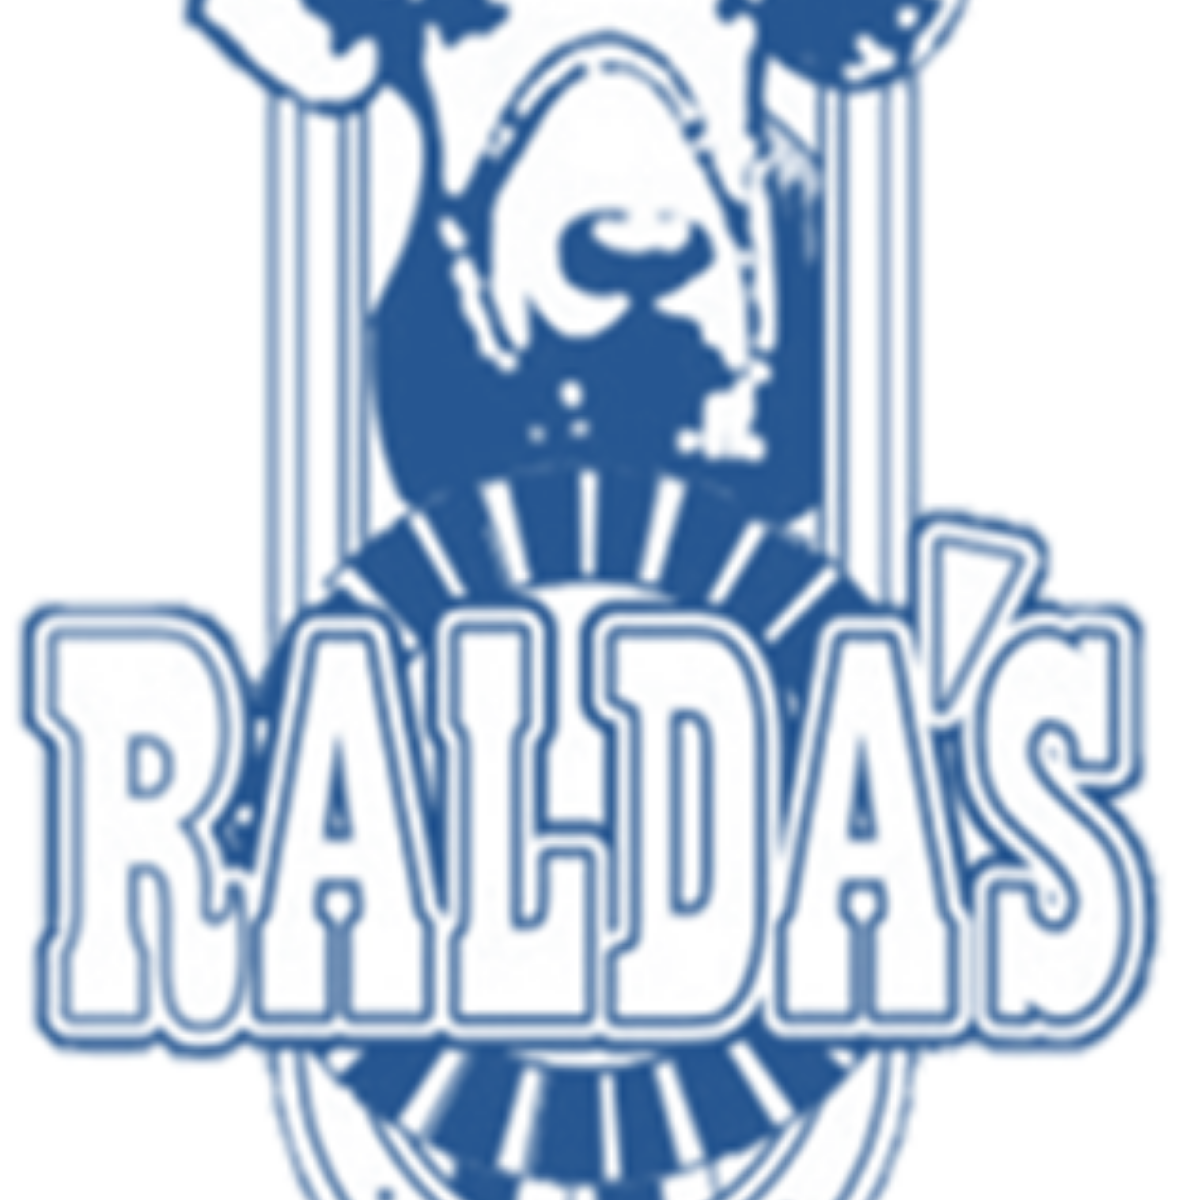 logo_Restaurante Ralda's Steak House